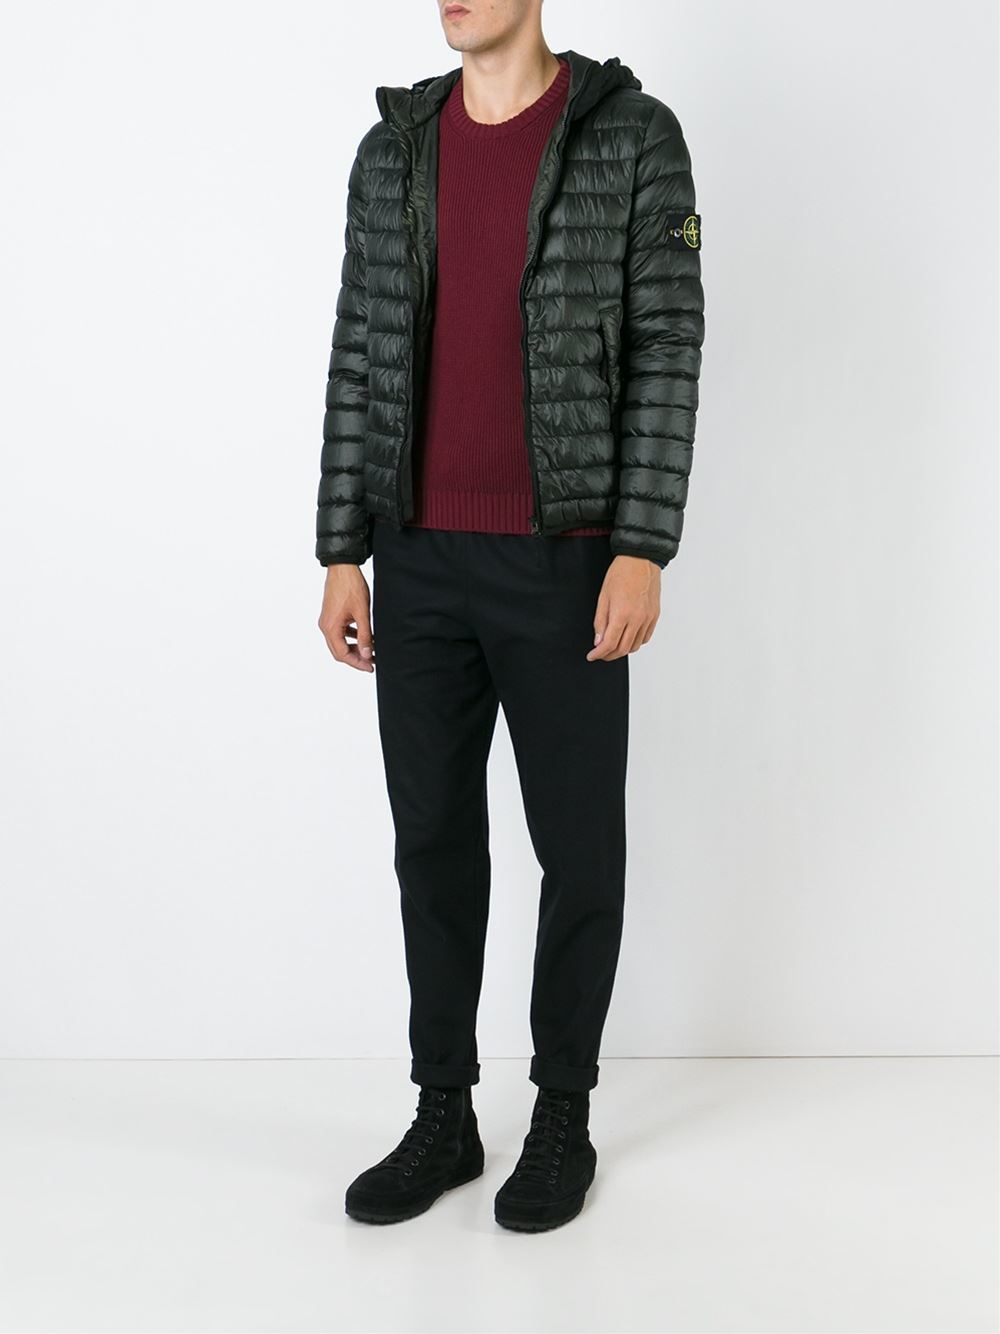 Stone island Padded Hooded Jacket in Green for Men - Lyst